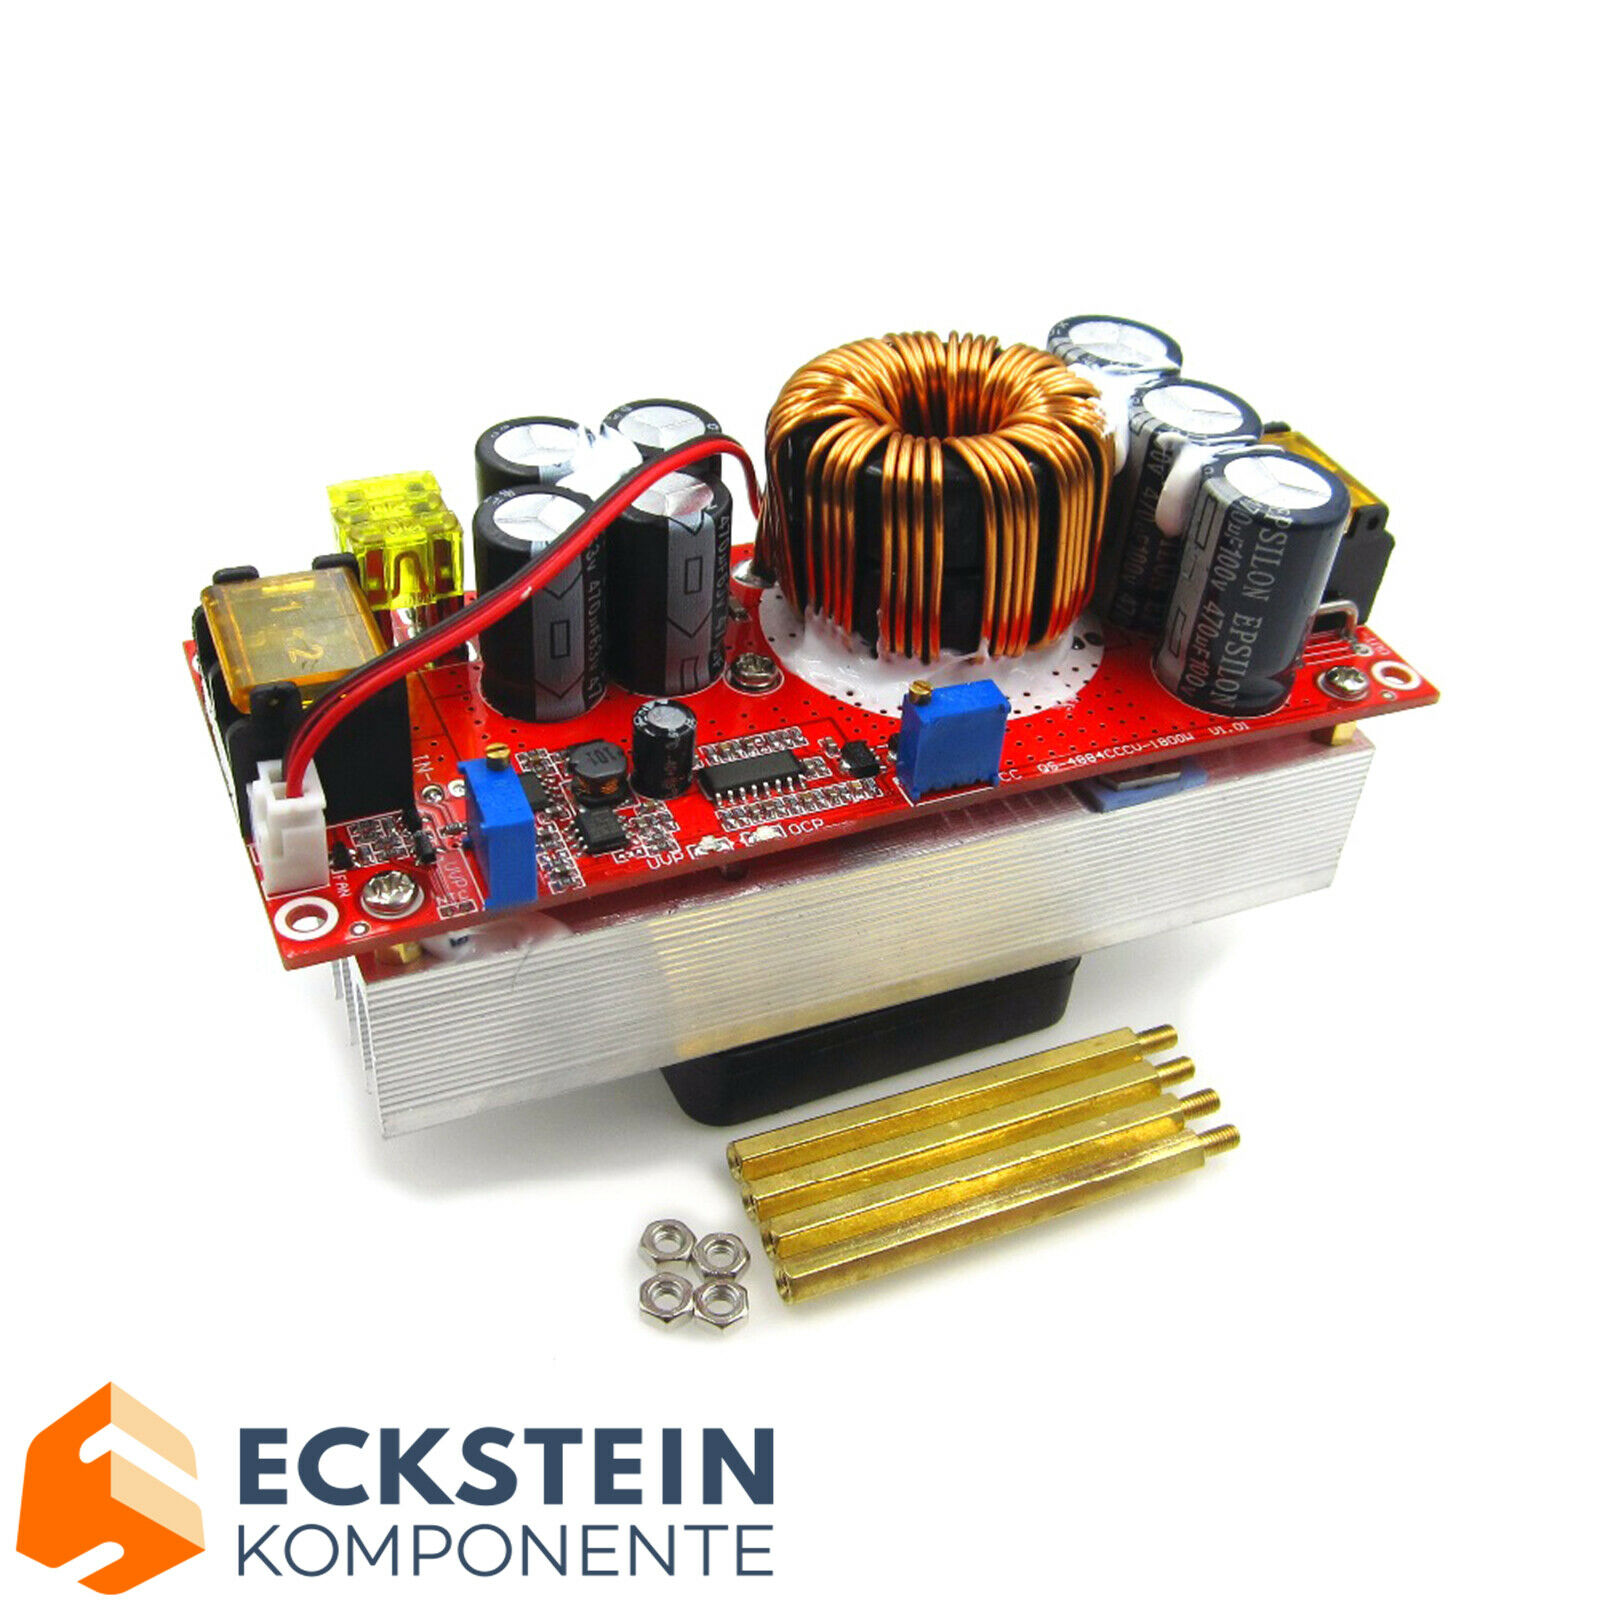 10v 60v To 13v 97v 1500w 30a Power Modul Dc Step Up Voltage Circuit 1 Von 4nur 4 Verfgbar Siehe Mehr